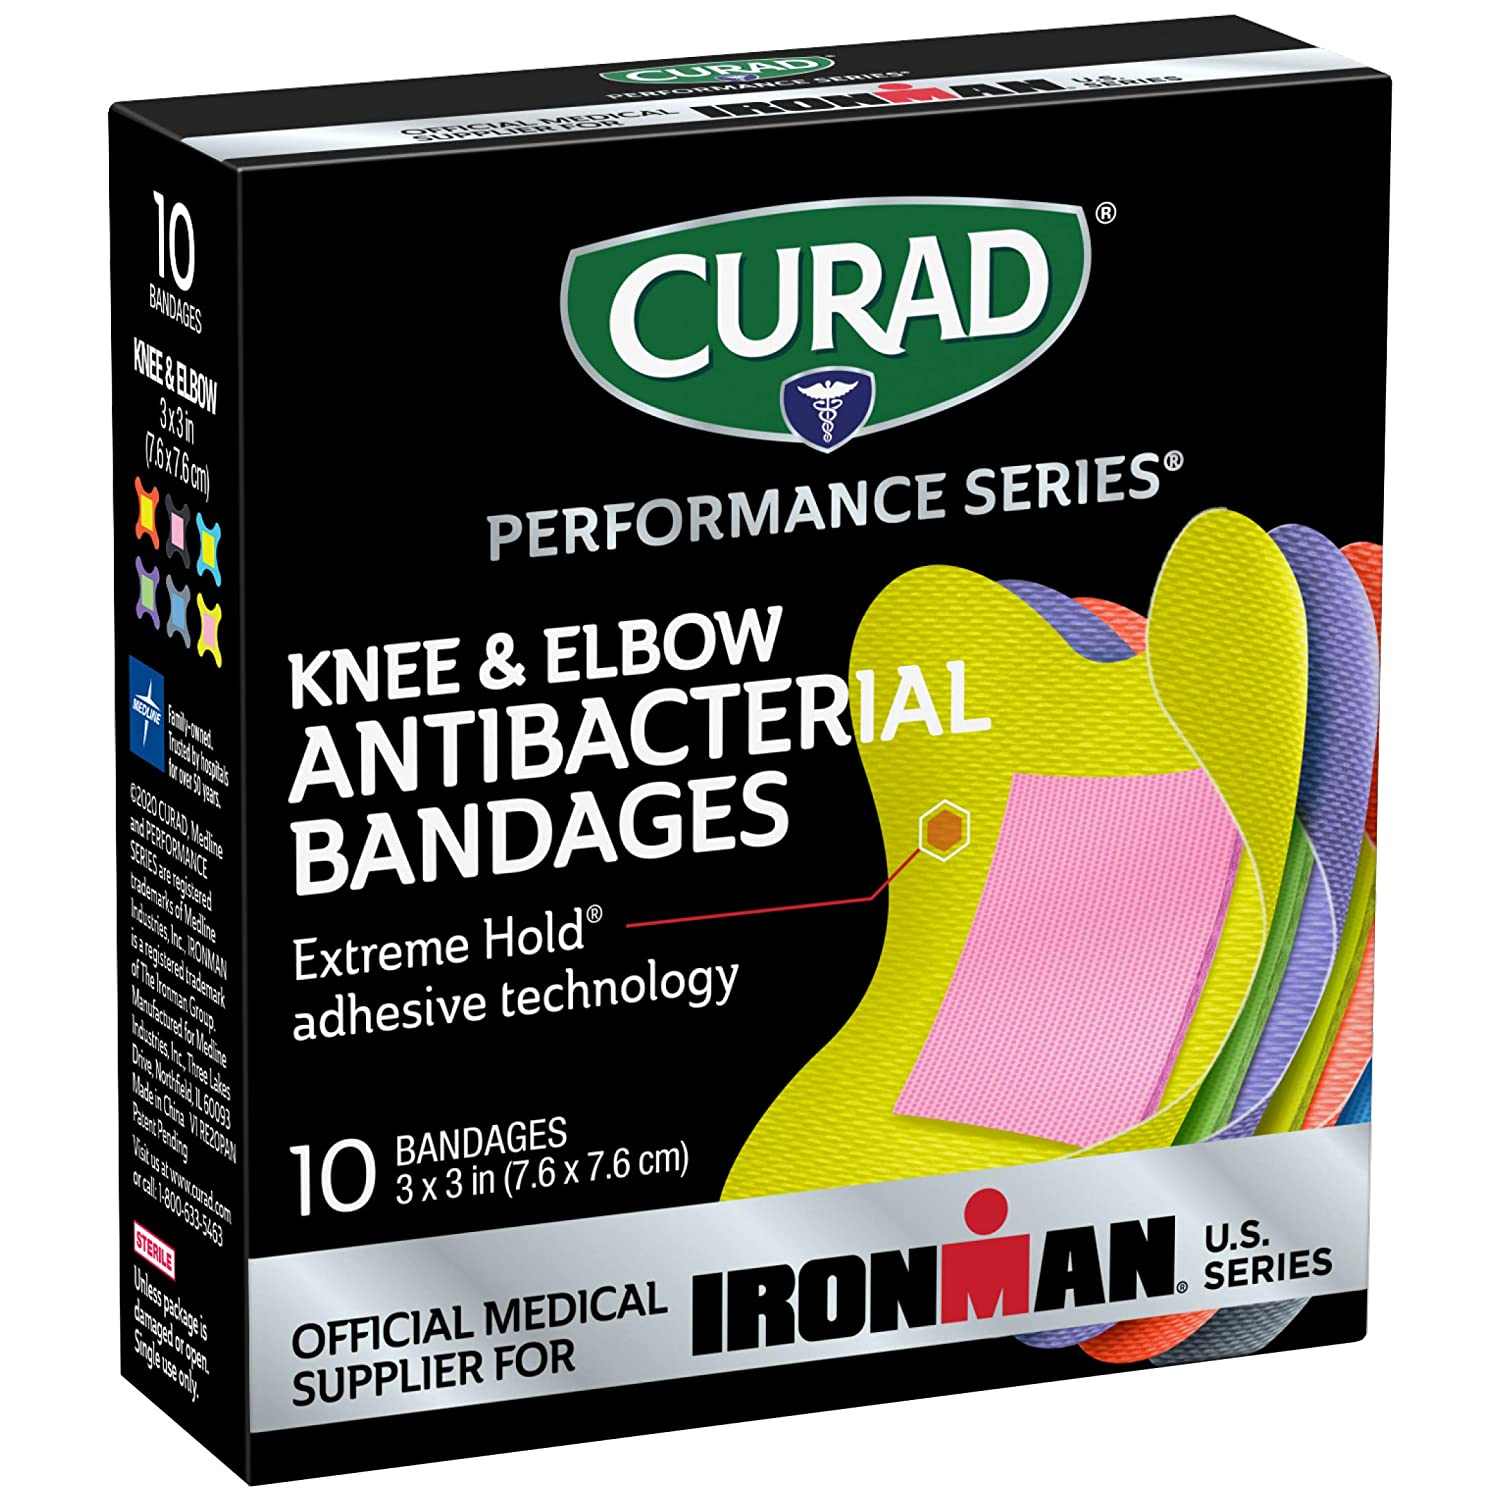 Curad - CURIM5022 Performance Series Ironman Knee and Elbow Antibacterial Bandages, Extreme Hold Adhesive Technology, Fabric Bandages, 10 Count